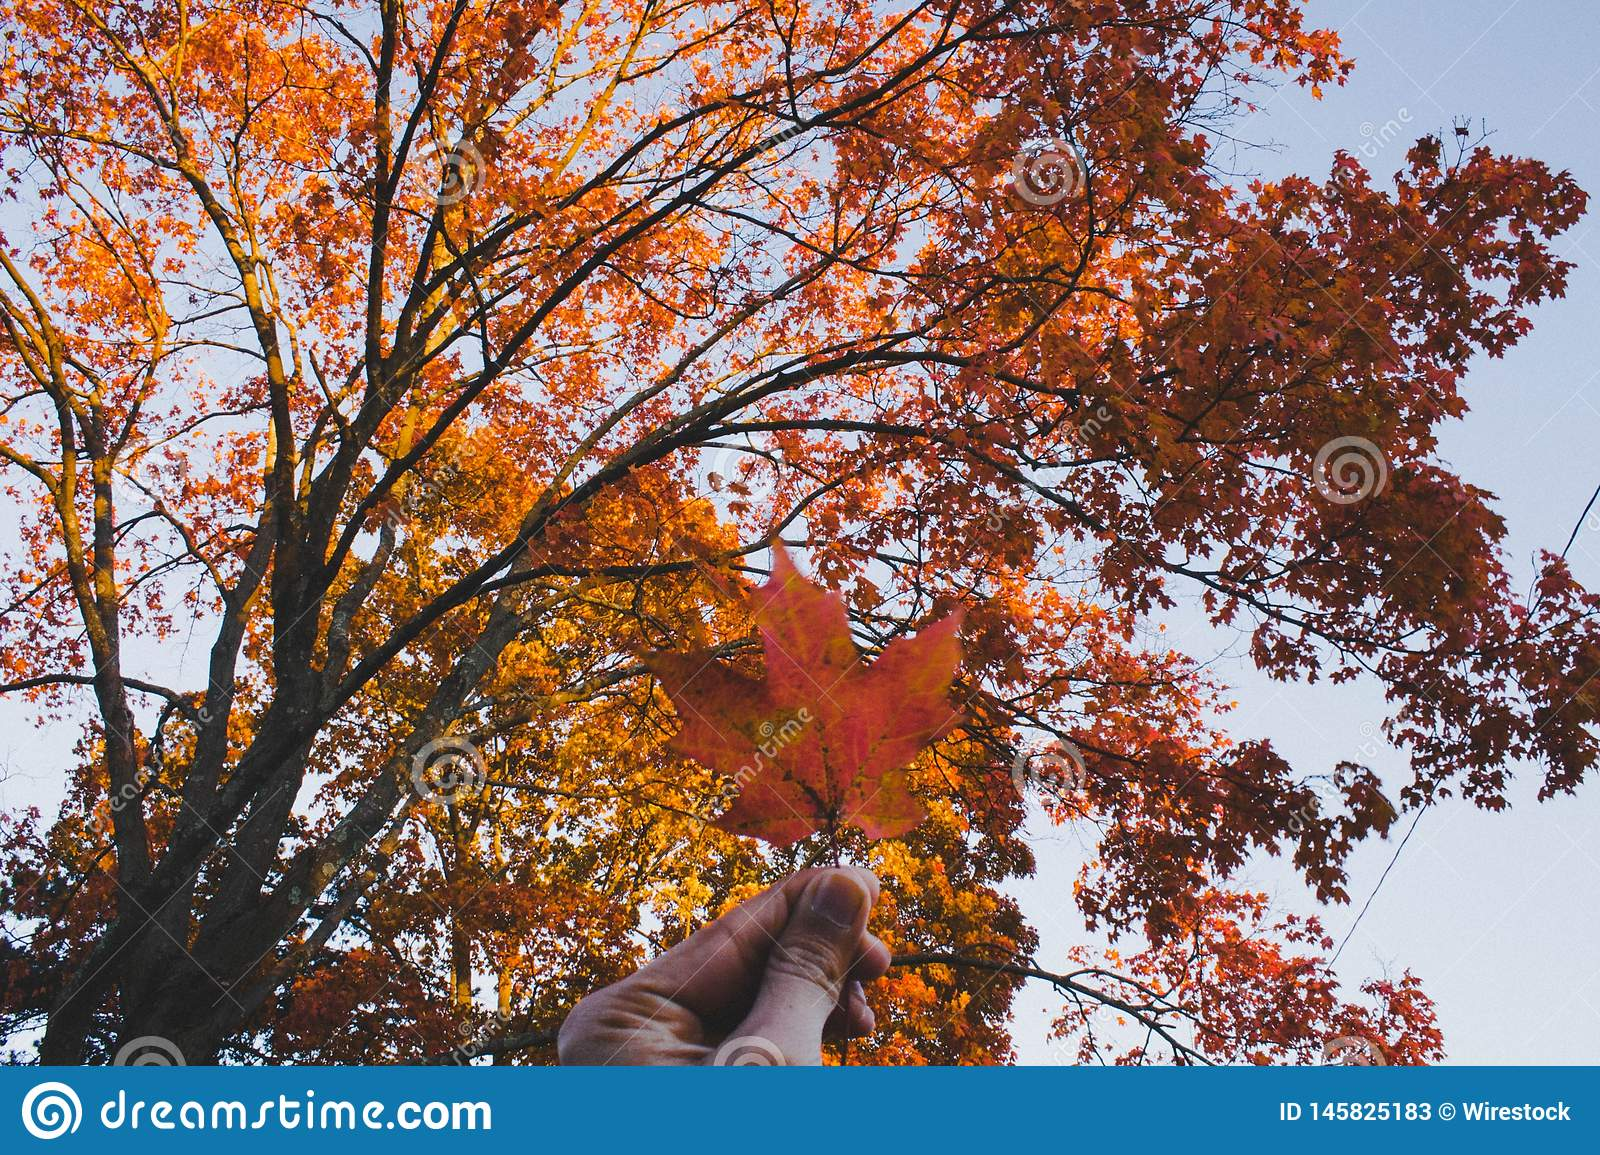 A golden leaf in hand with a beautiful Autumn tree in the background